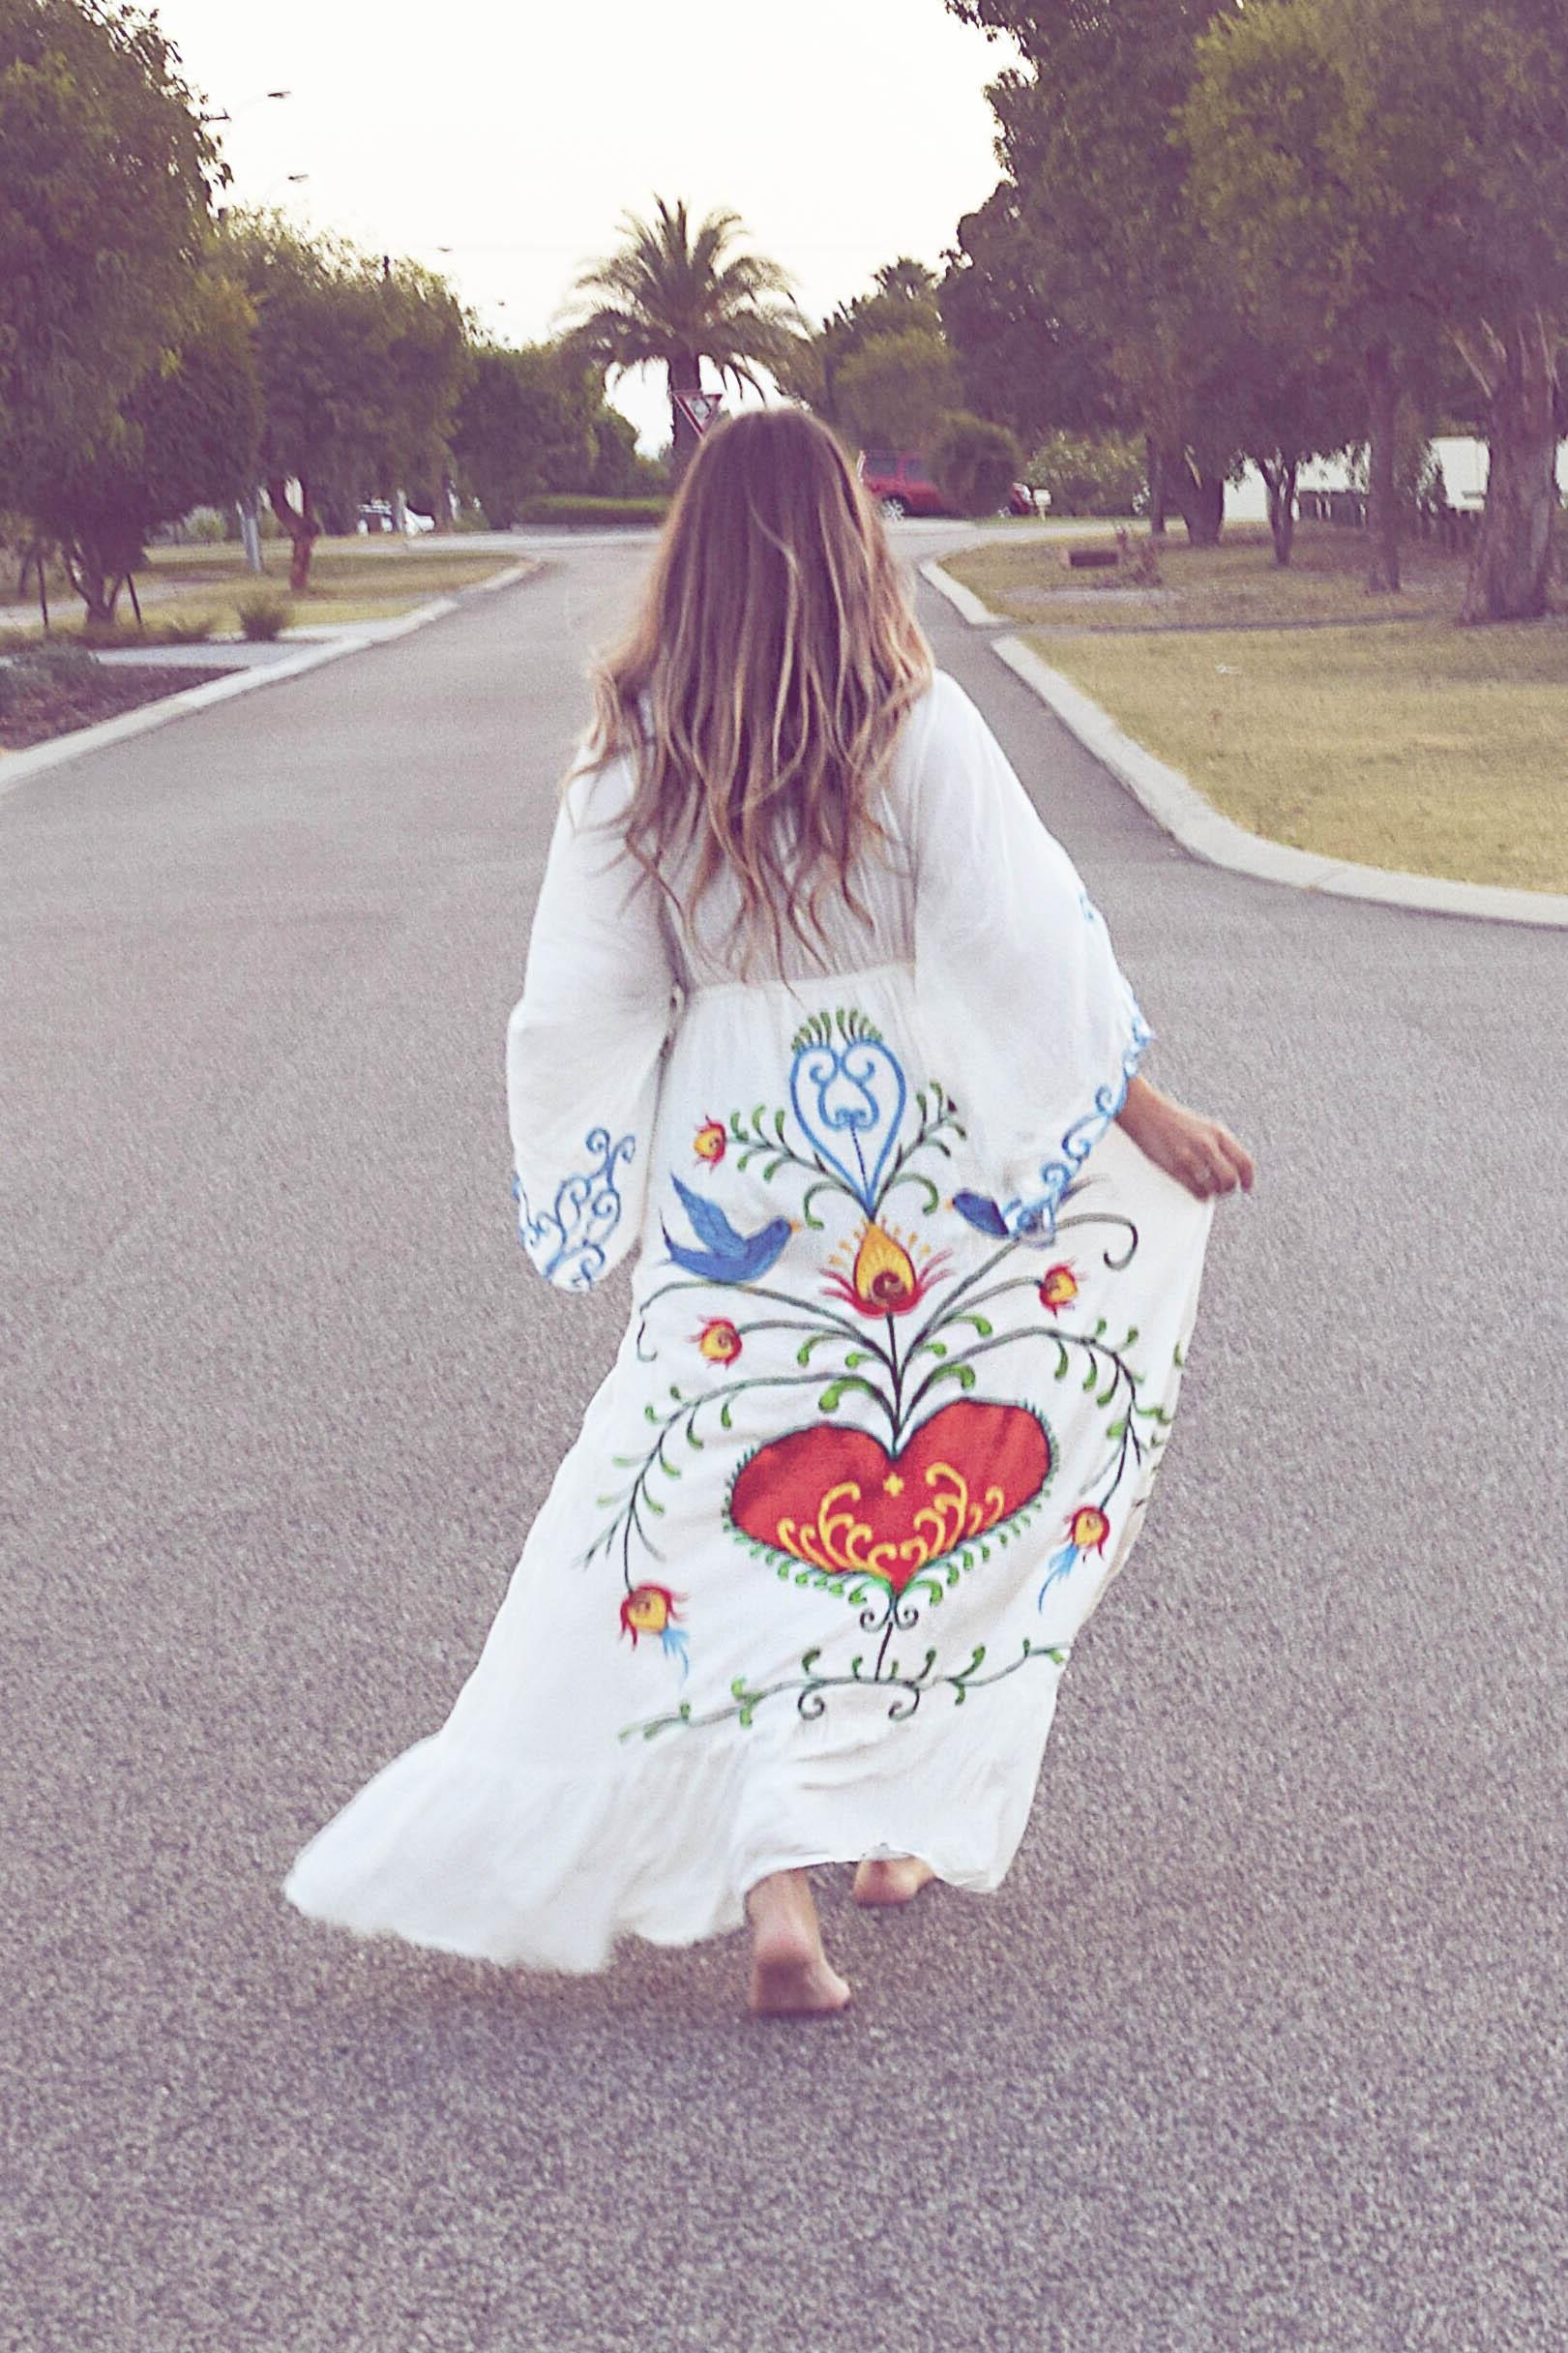 HTB1ap49nvDH8KJjy1Xcq6ApdXXas - Jastie Embroidered V-neck Batwing Sleeve Loose Maxi Dress Plus Size Dress-Jastie Embroidered V-neck Batwing Sleeve Loose Maxi Dress Plus Size Dress